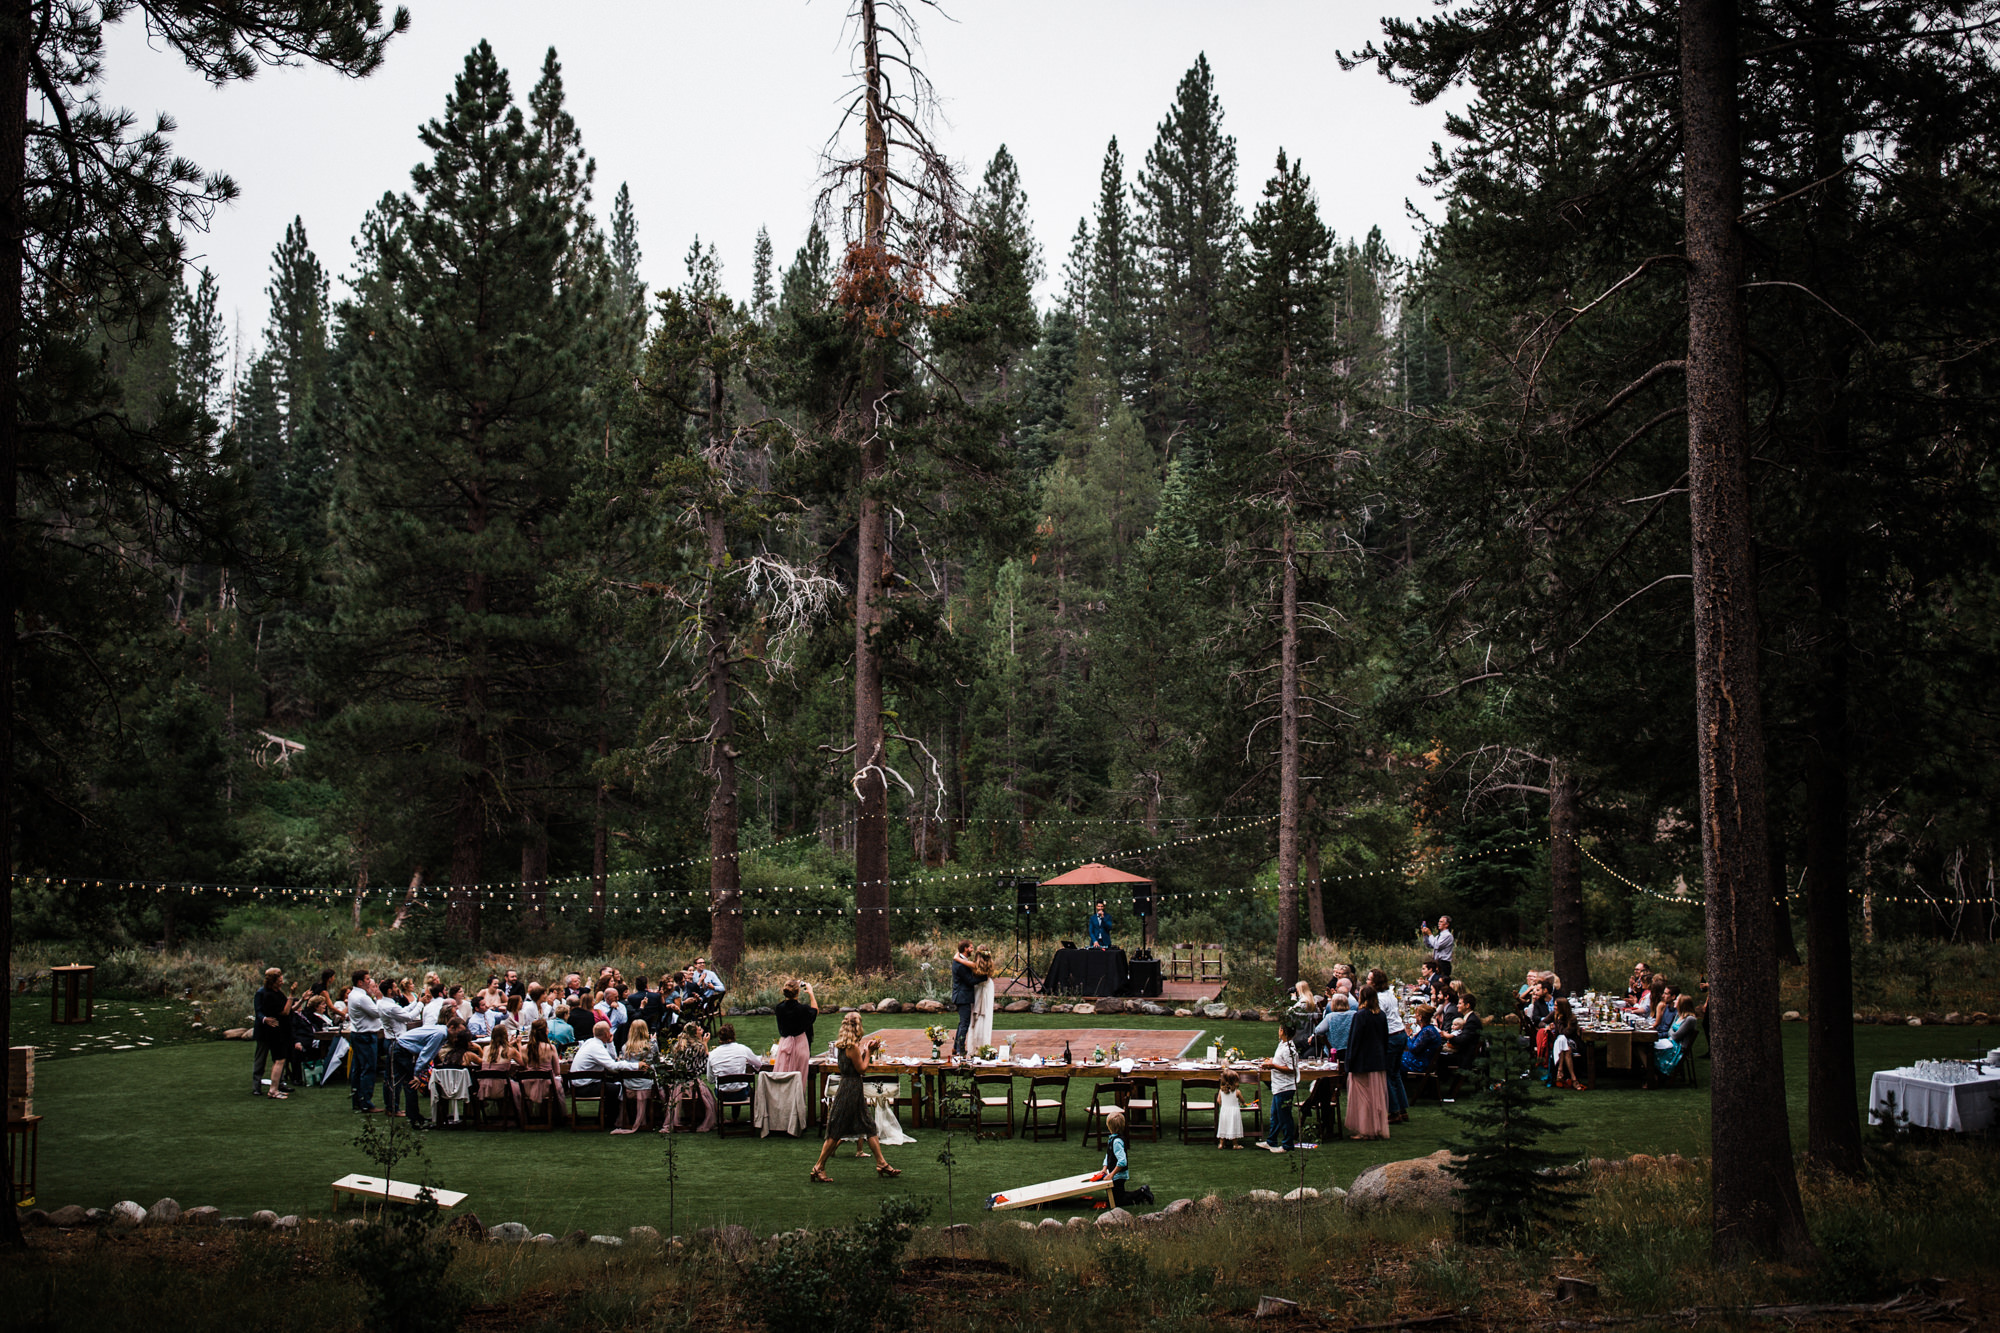 intimate reception in the woods near lake tahoe, california | destination adventure wedding photographers | the hearnes adventure photography | www.thehearnes.com